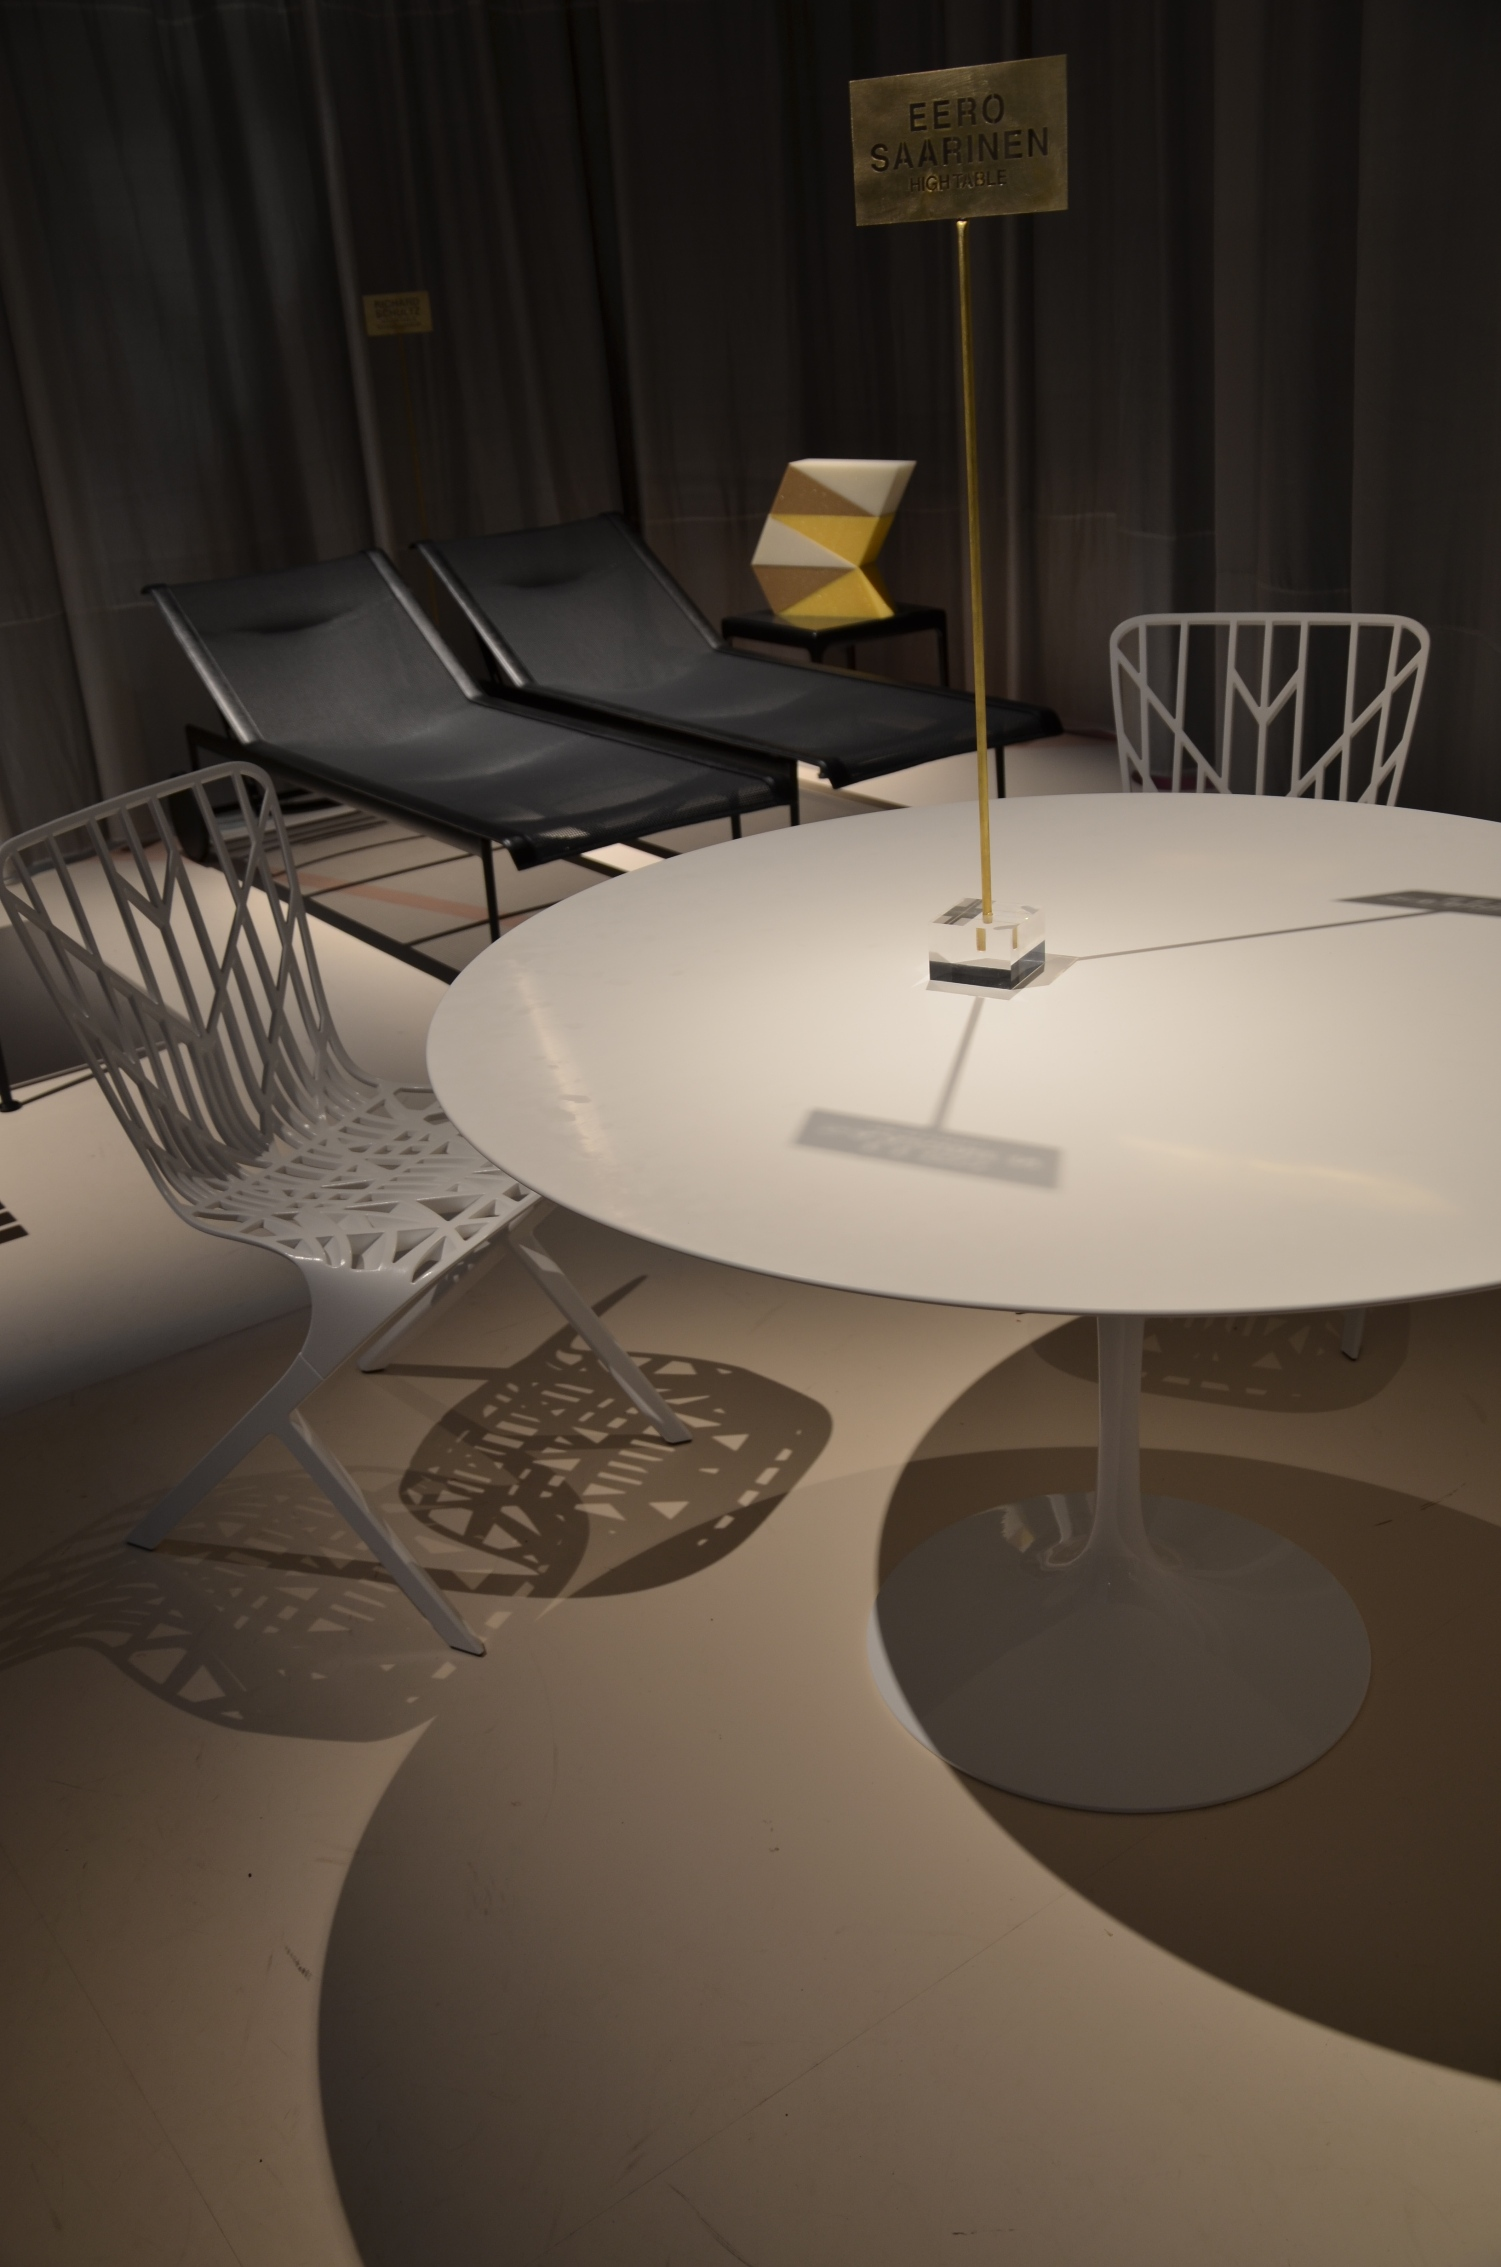 16 knoll david adjaye the washington collection chair isaloni salone del mobile 2015 milan targi meblowe w mediolanie interior furniture light fixtures design tendencies trends review